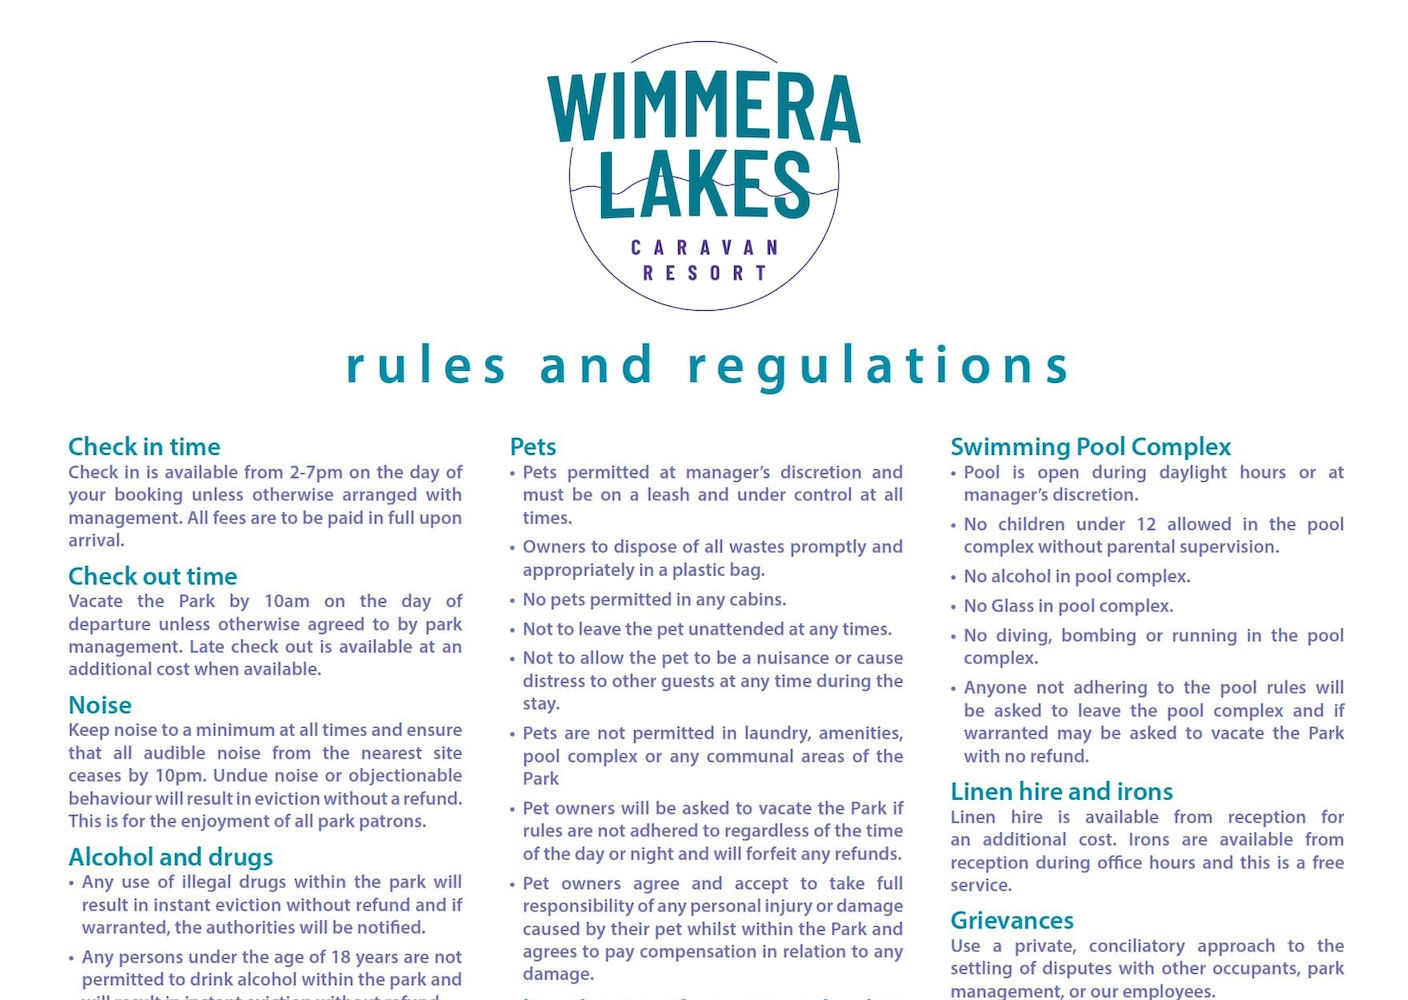 wimmera-rules-and-regulations